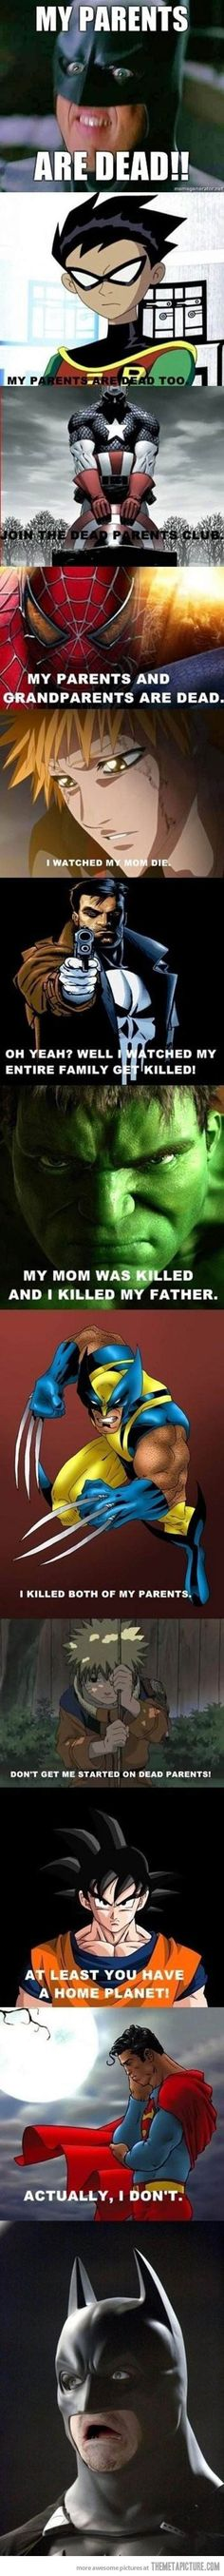 superheroes-parents-dead